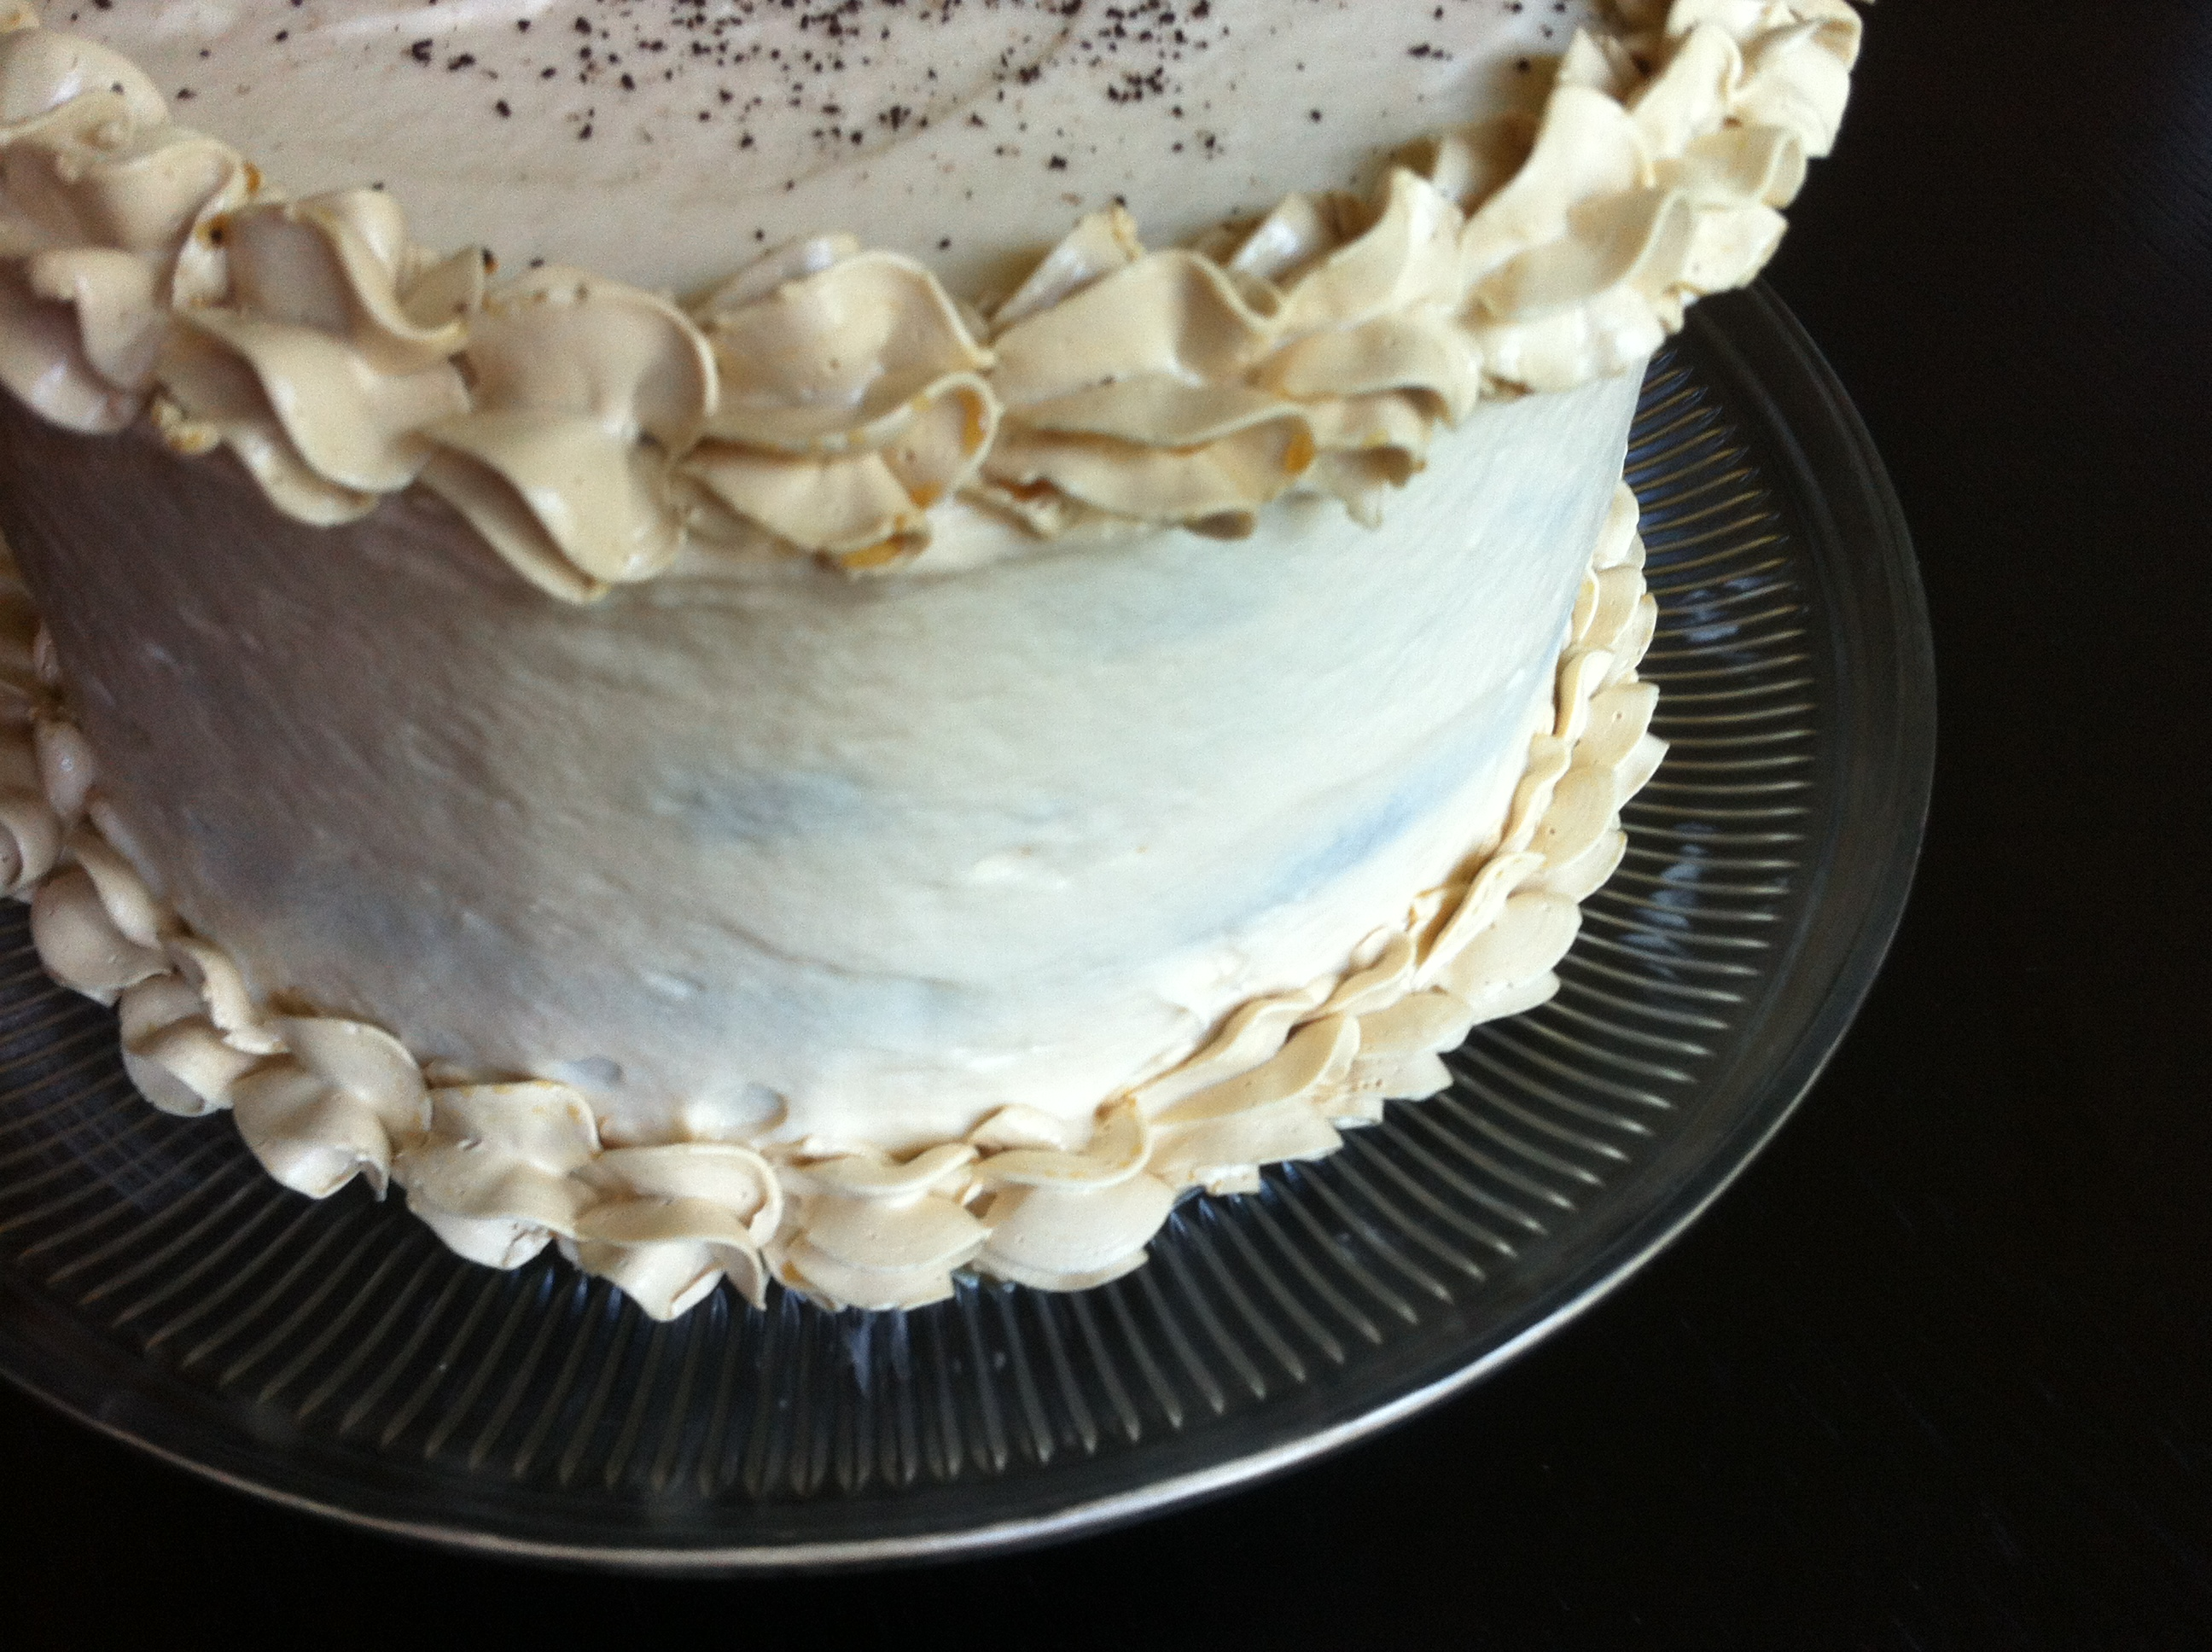 Gluten Free White Cake Recipe Without Xanthan Gum